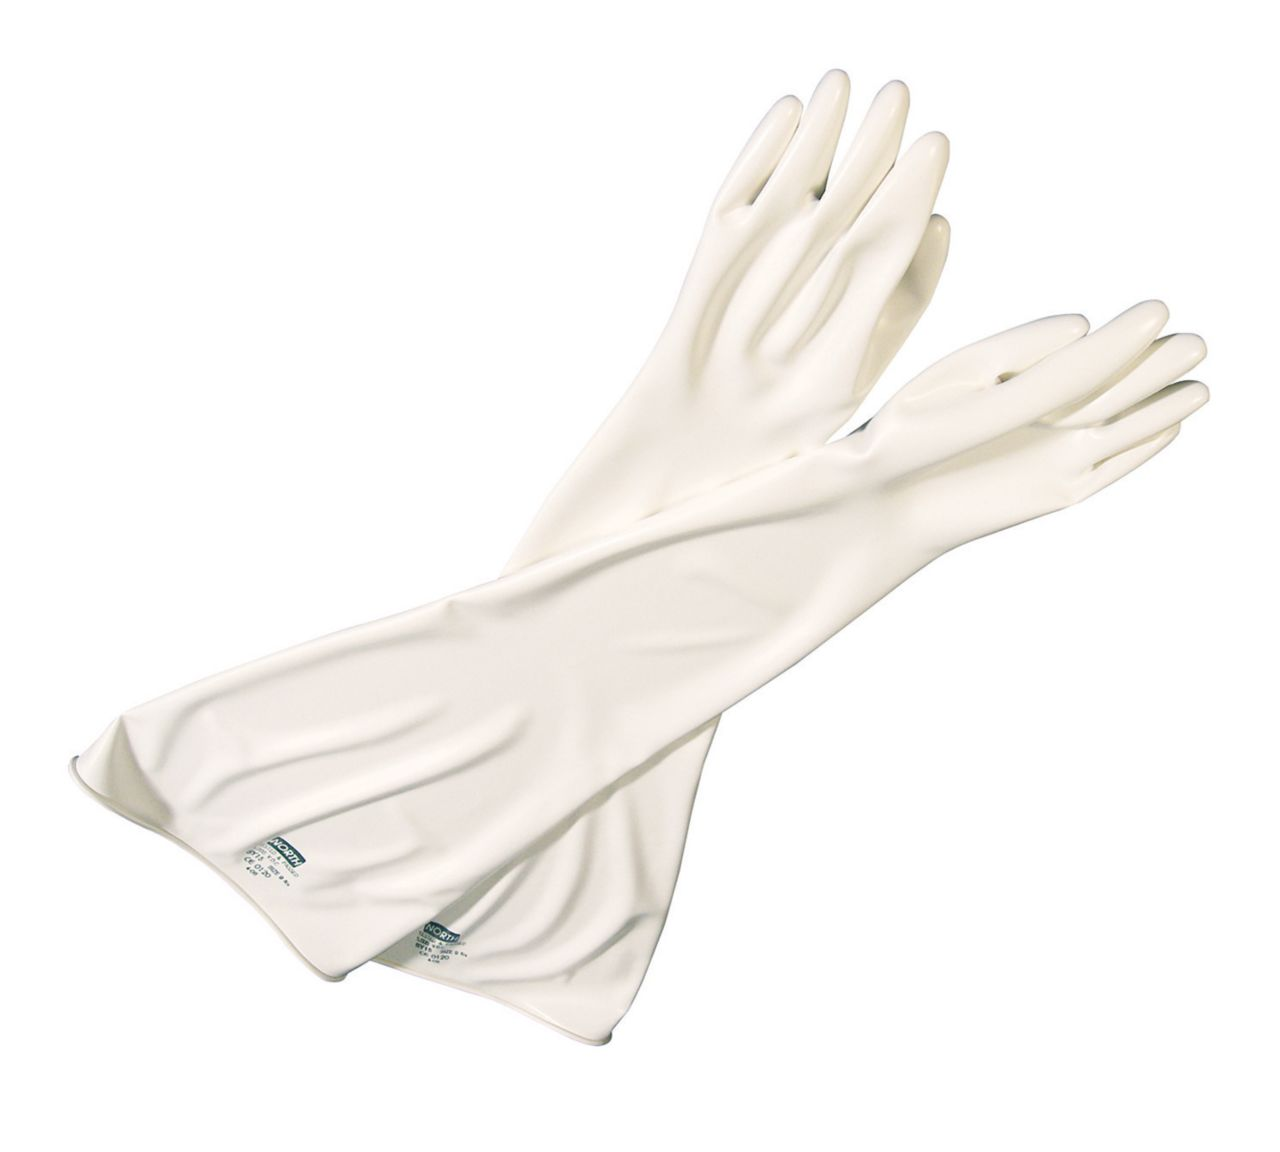 CSM Glovebox Gloves - 7YLY3032_1